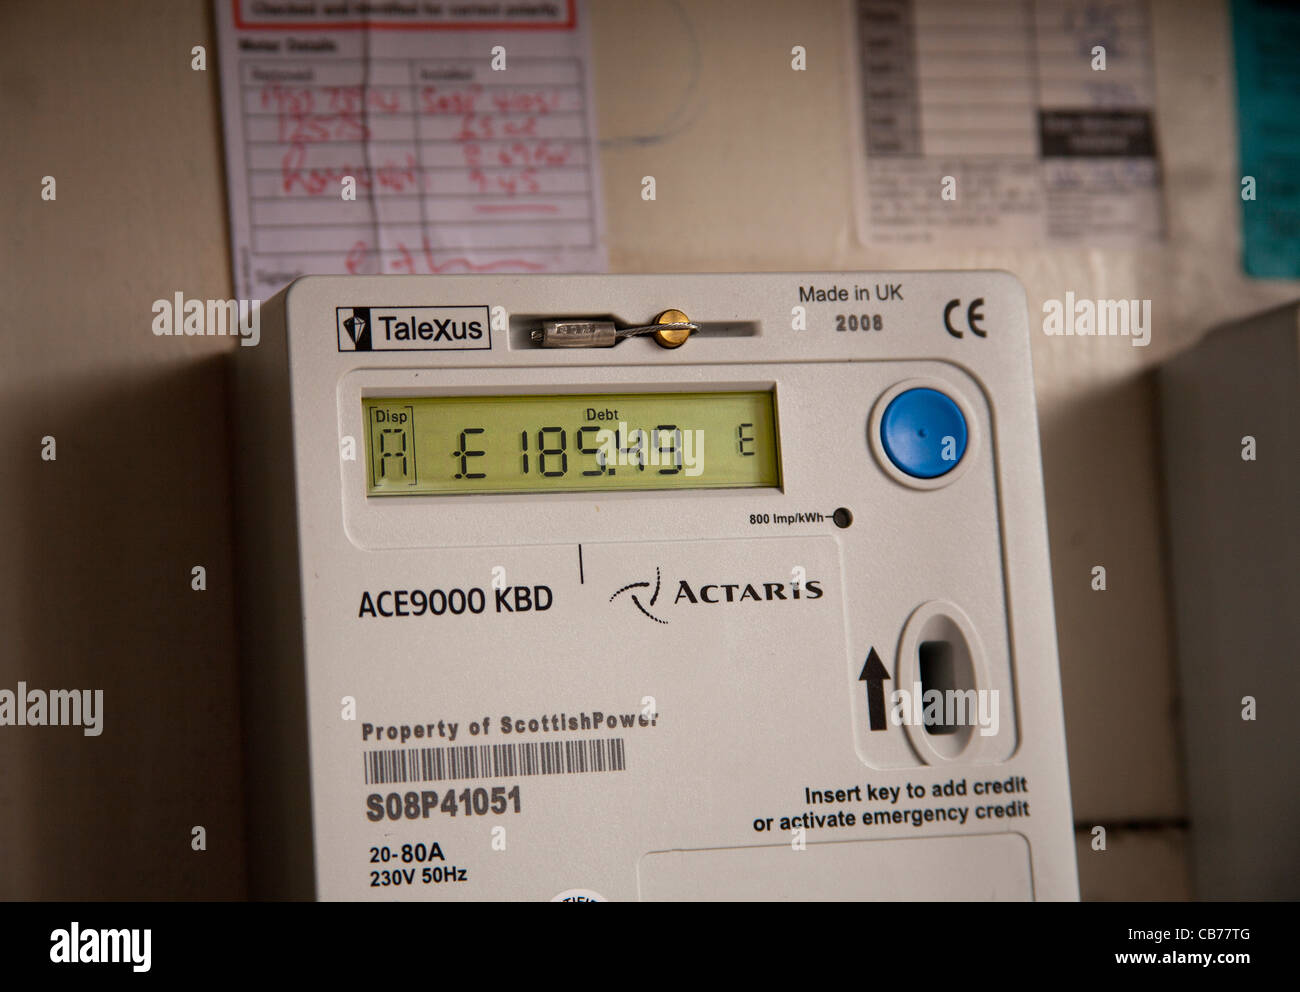 Debt Display _Electrical Supply and Distribution displaying an amount in debt - Stock Image